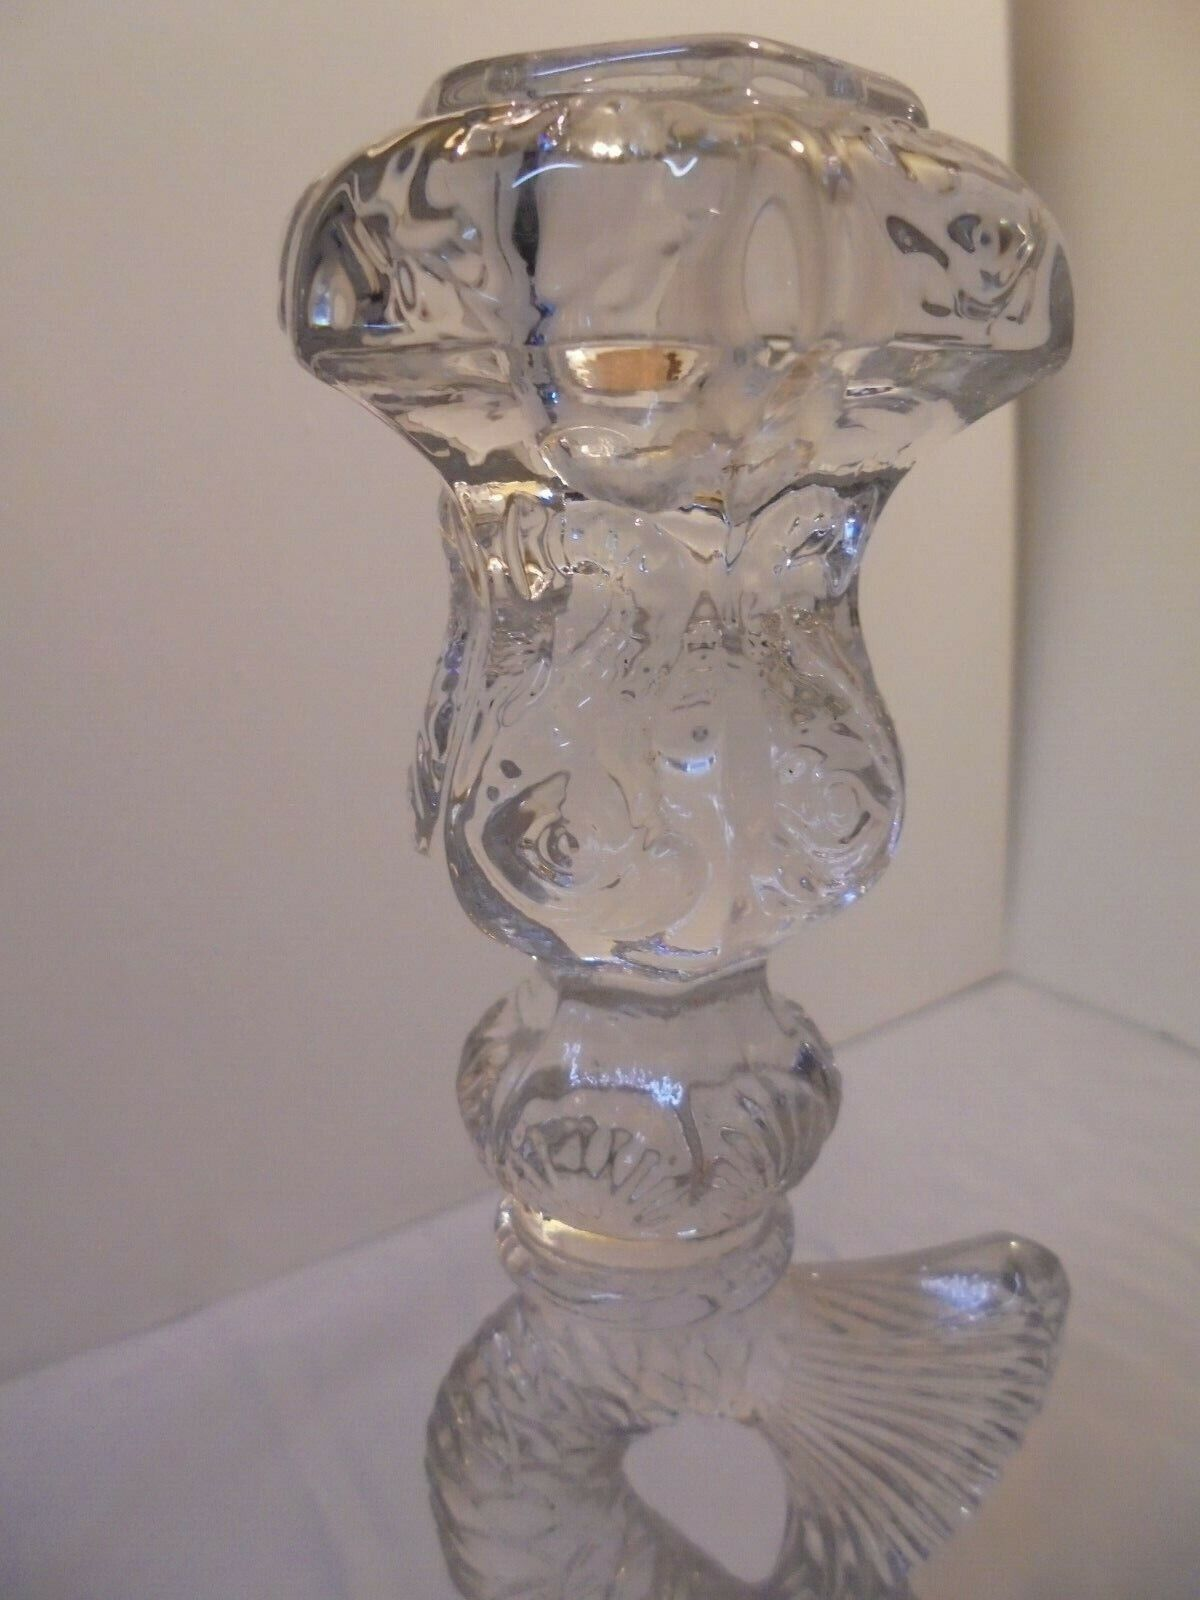 CLEAR GLASS KOI FISH CANDLESTICK, BY IMPERIAL, MMA, 10.75 TALL 4 ACROSS VINTA - $99.99